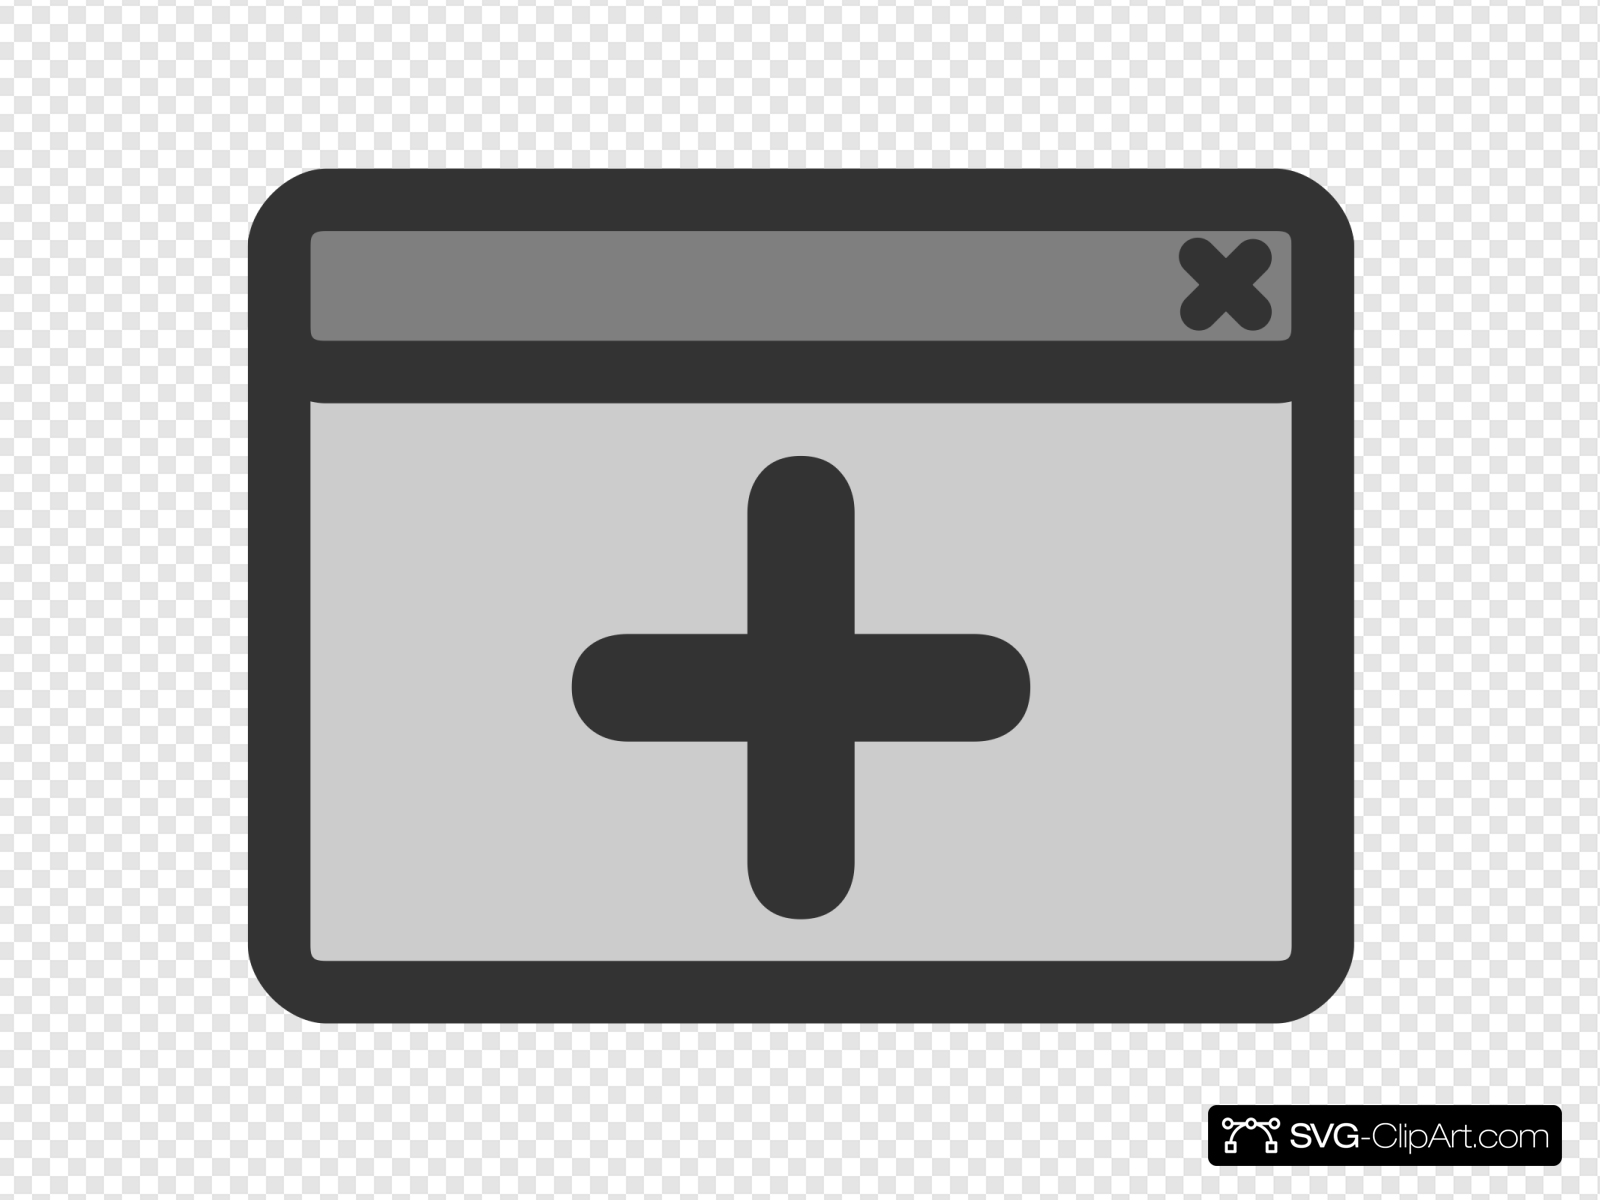 New Window Clip art, Icon and SVG.